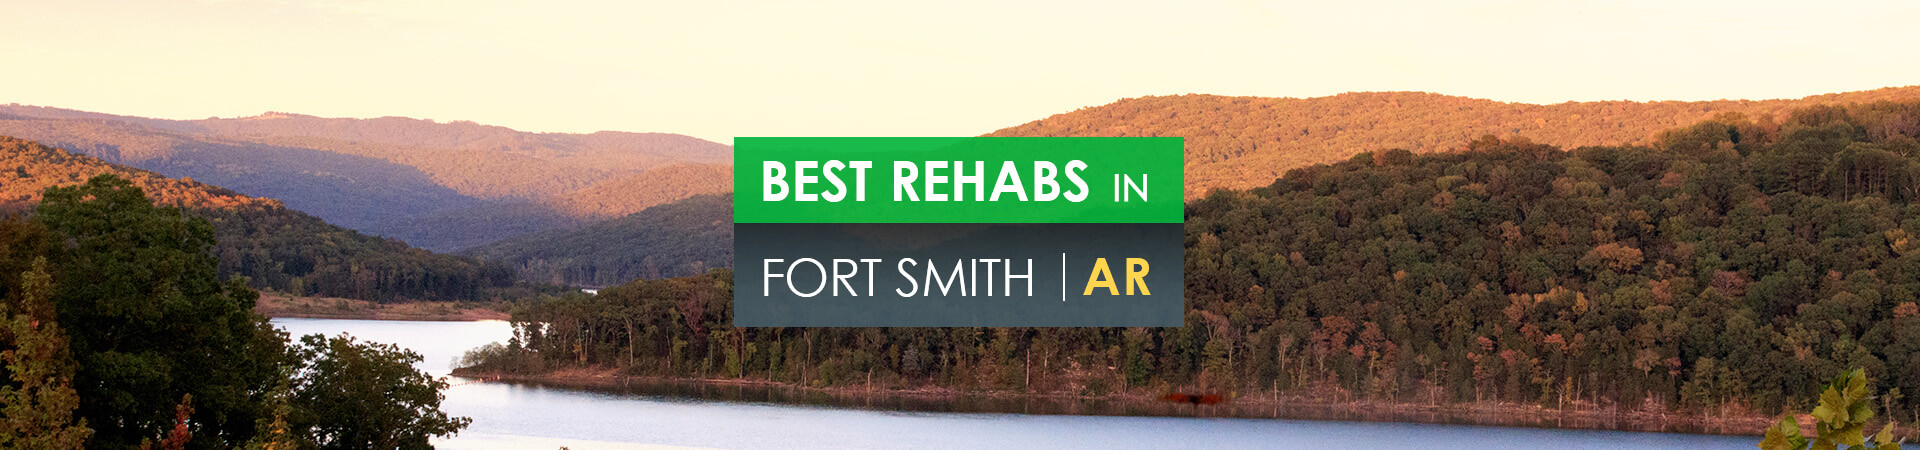 Best rehabs in Fort Smith, AR